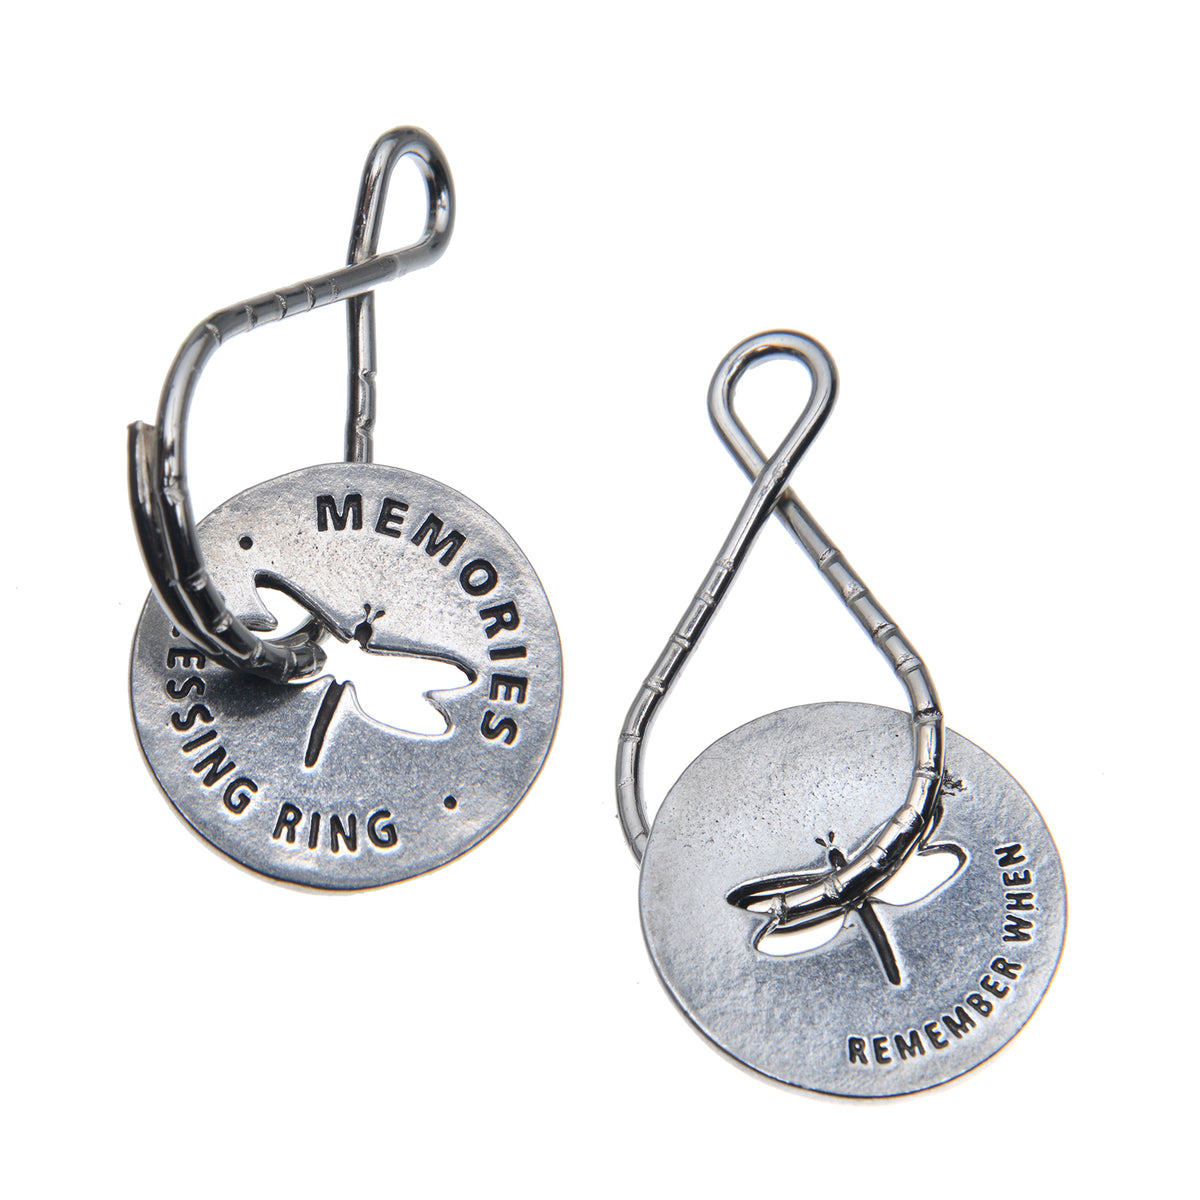 Memories Blessing Ring Charm, Pewter, Handcrafted